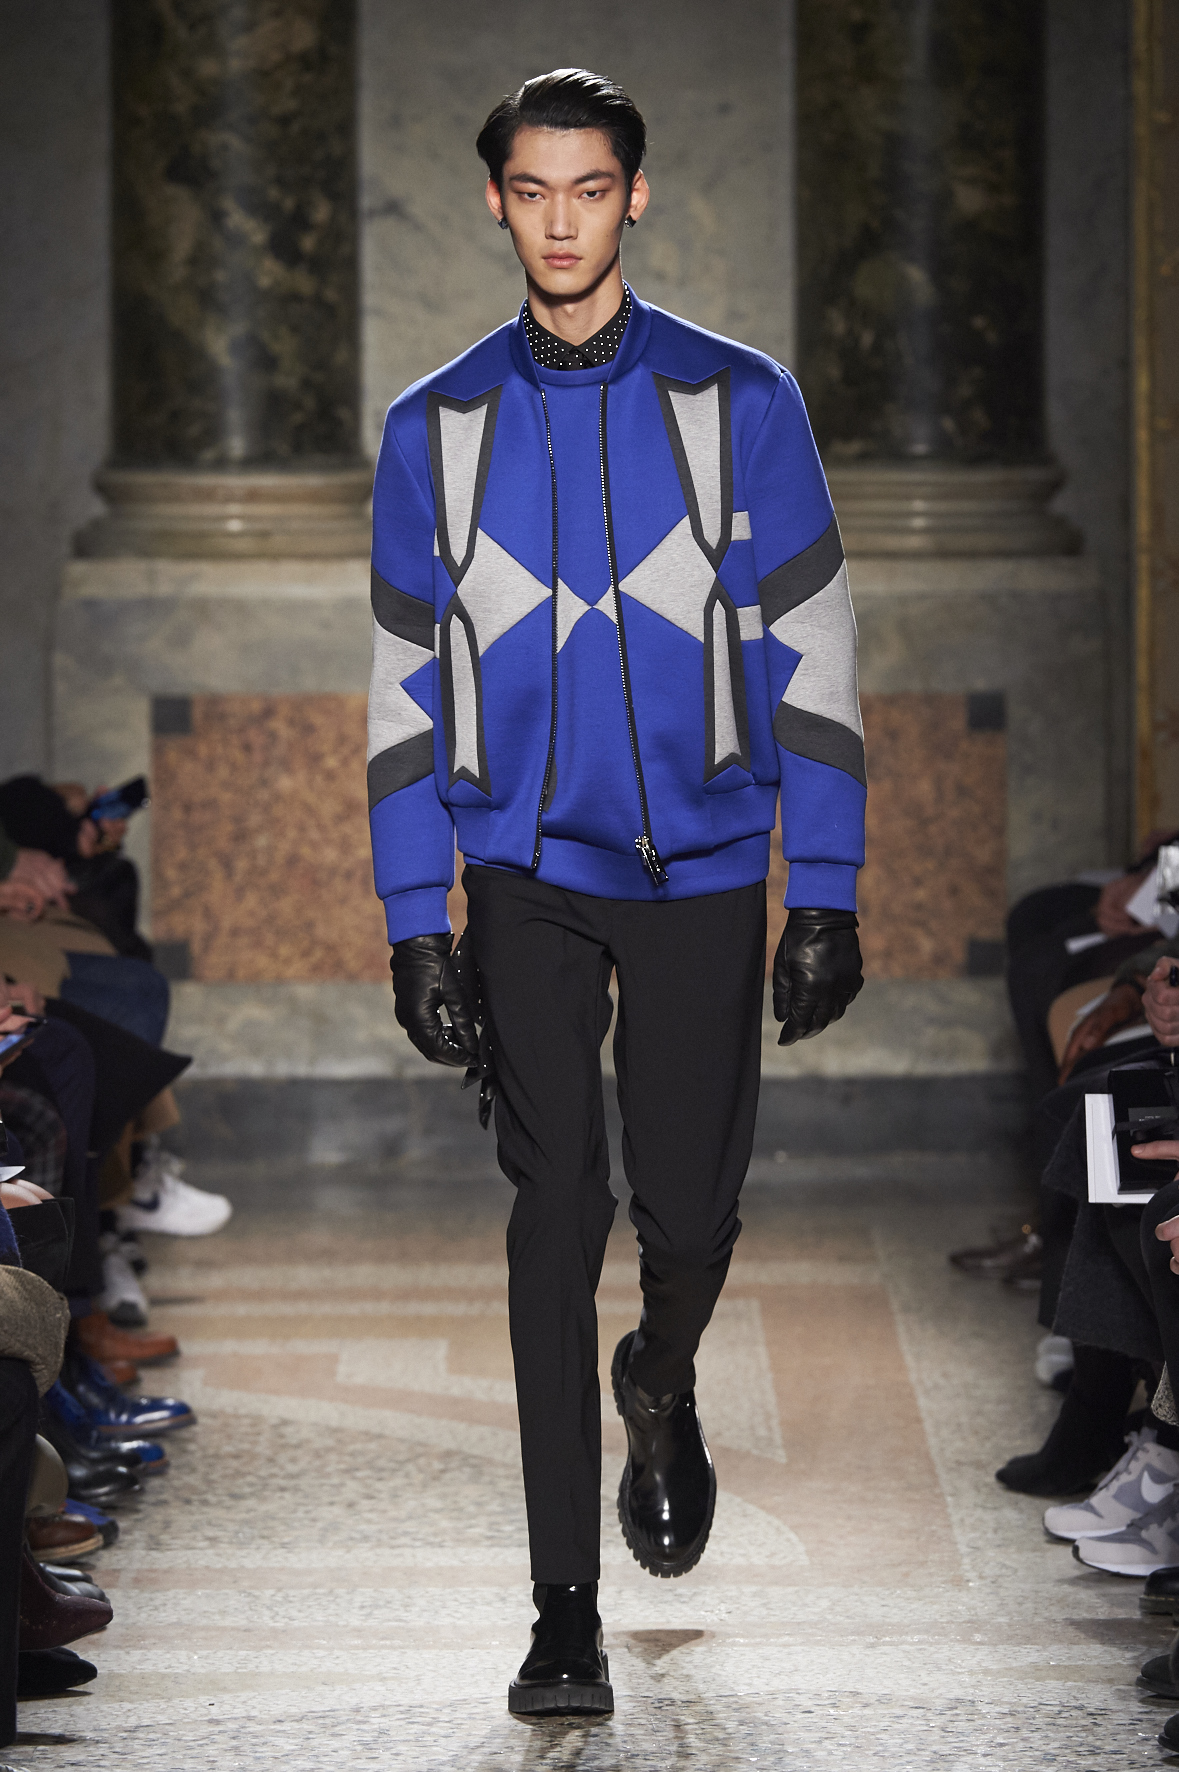 LES HOMMES - Fall Winter 2016/17